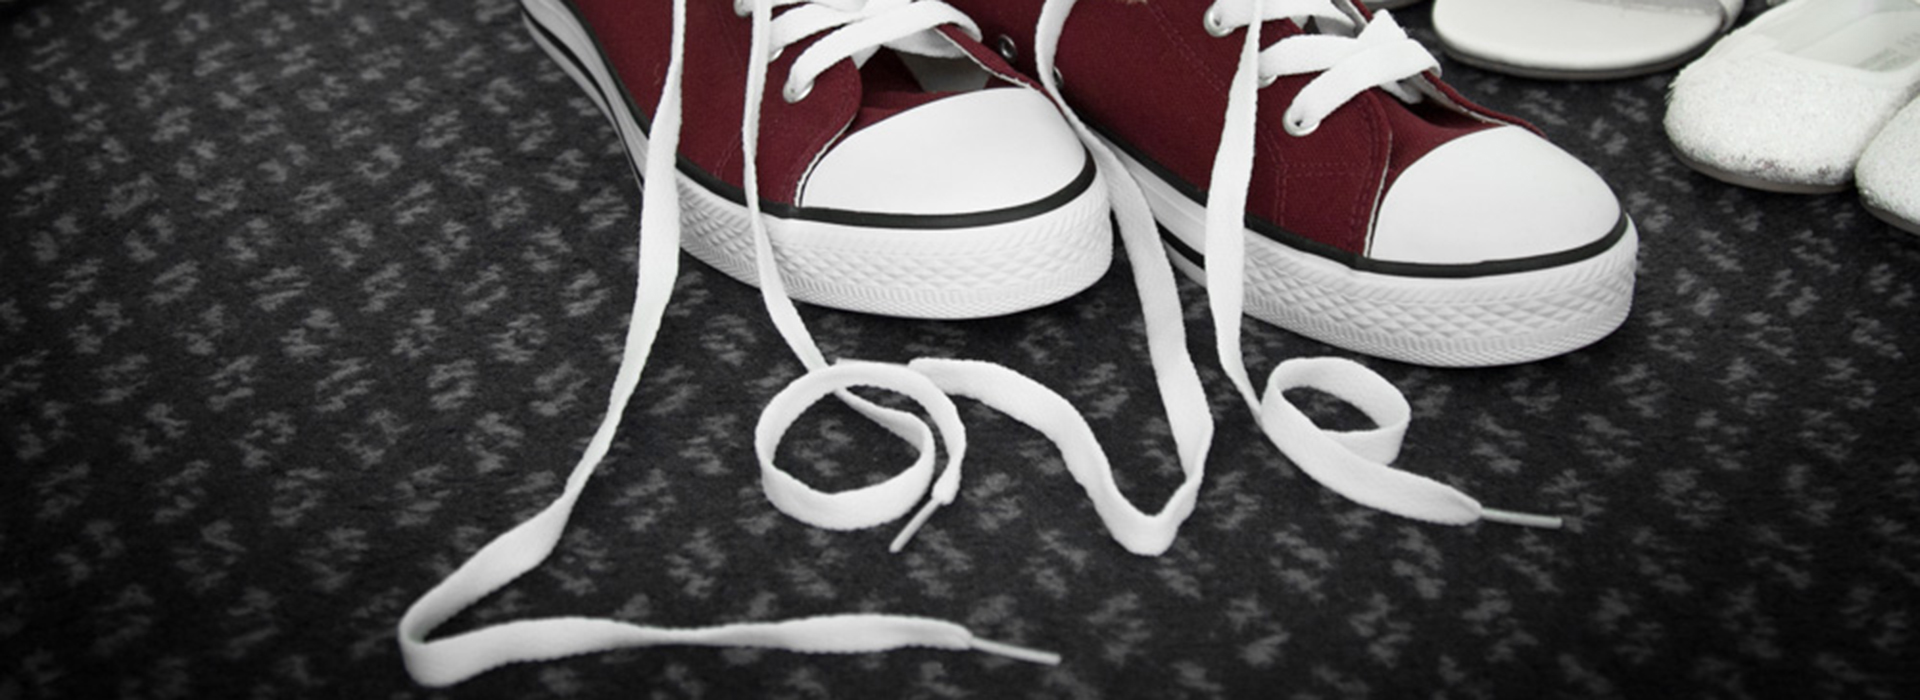 Leah Coutts Photography Love shoelaces